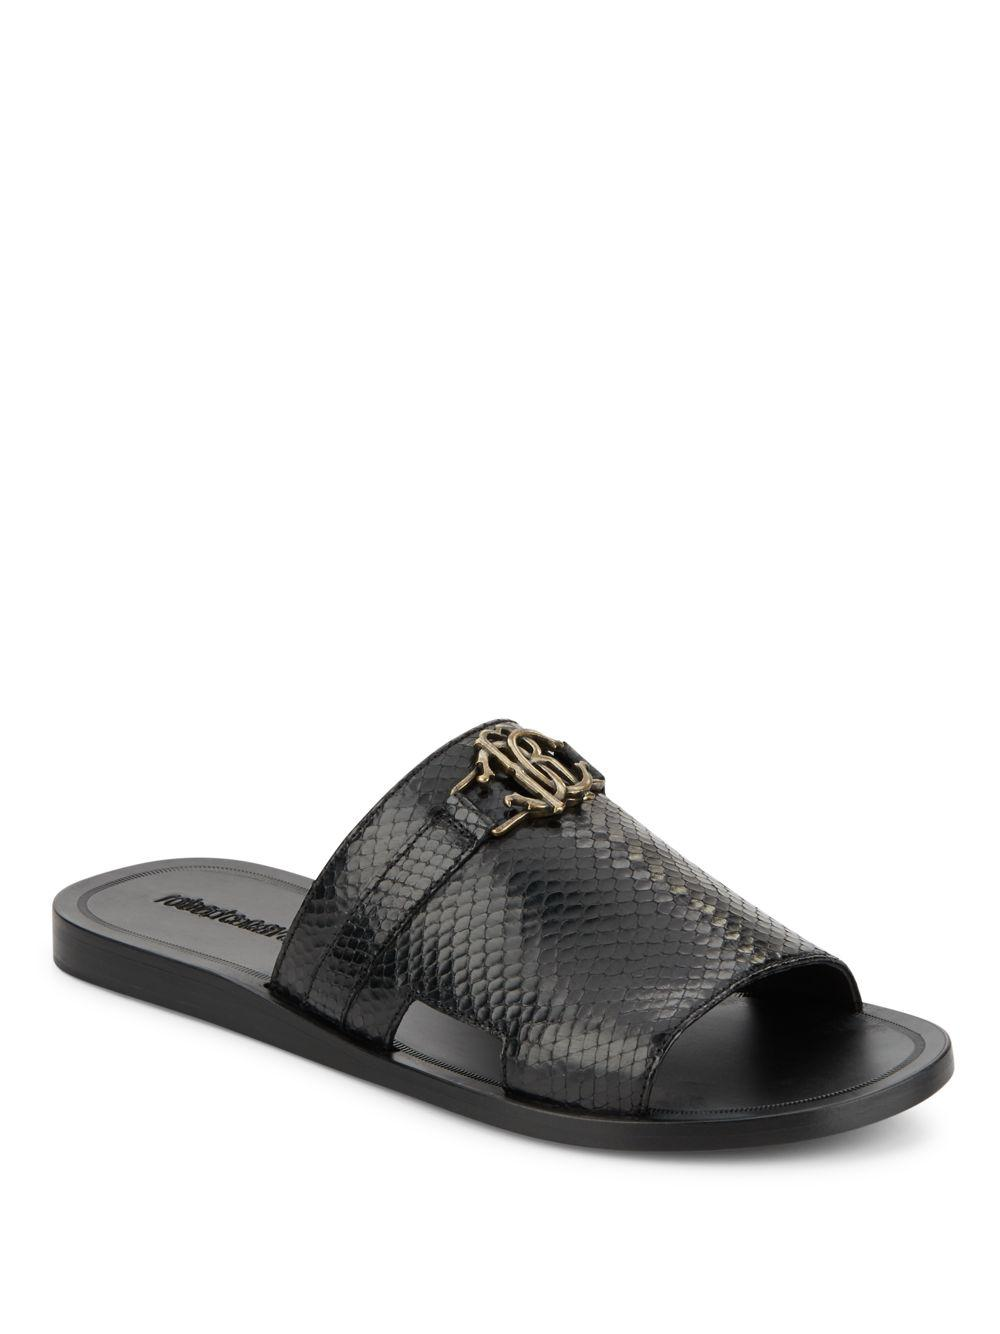 discount high quality Roberto Cavalli Leather Slide Sandals outlet professional RwQg6M